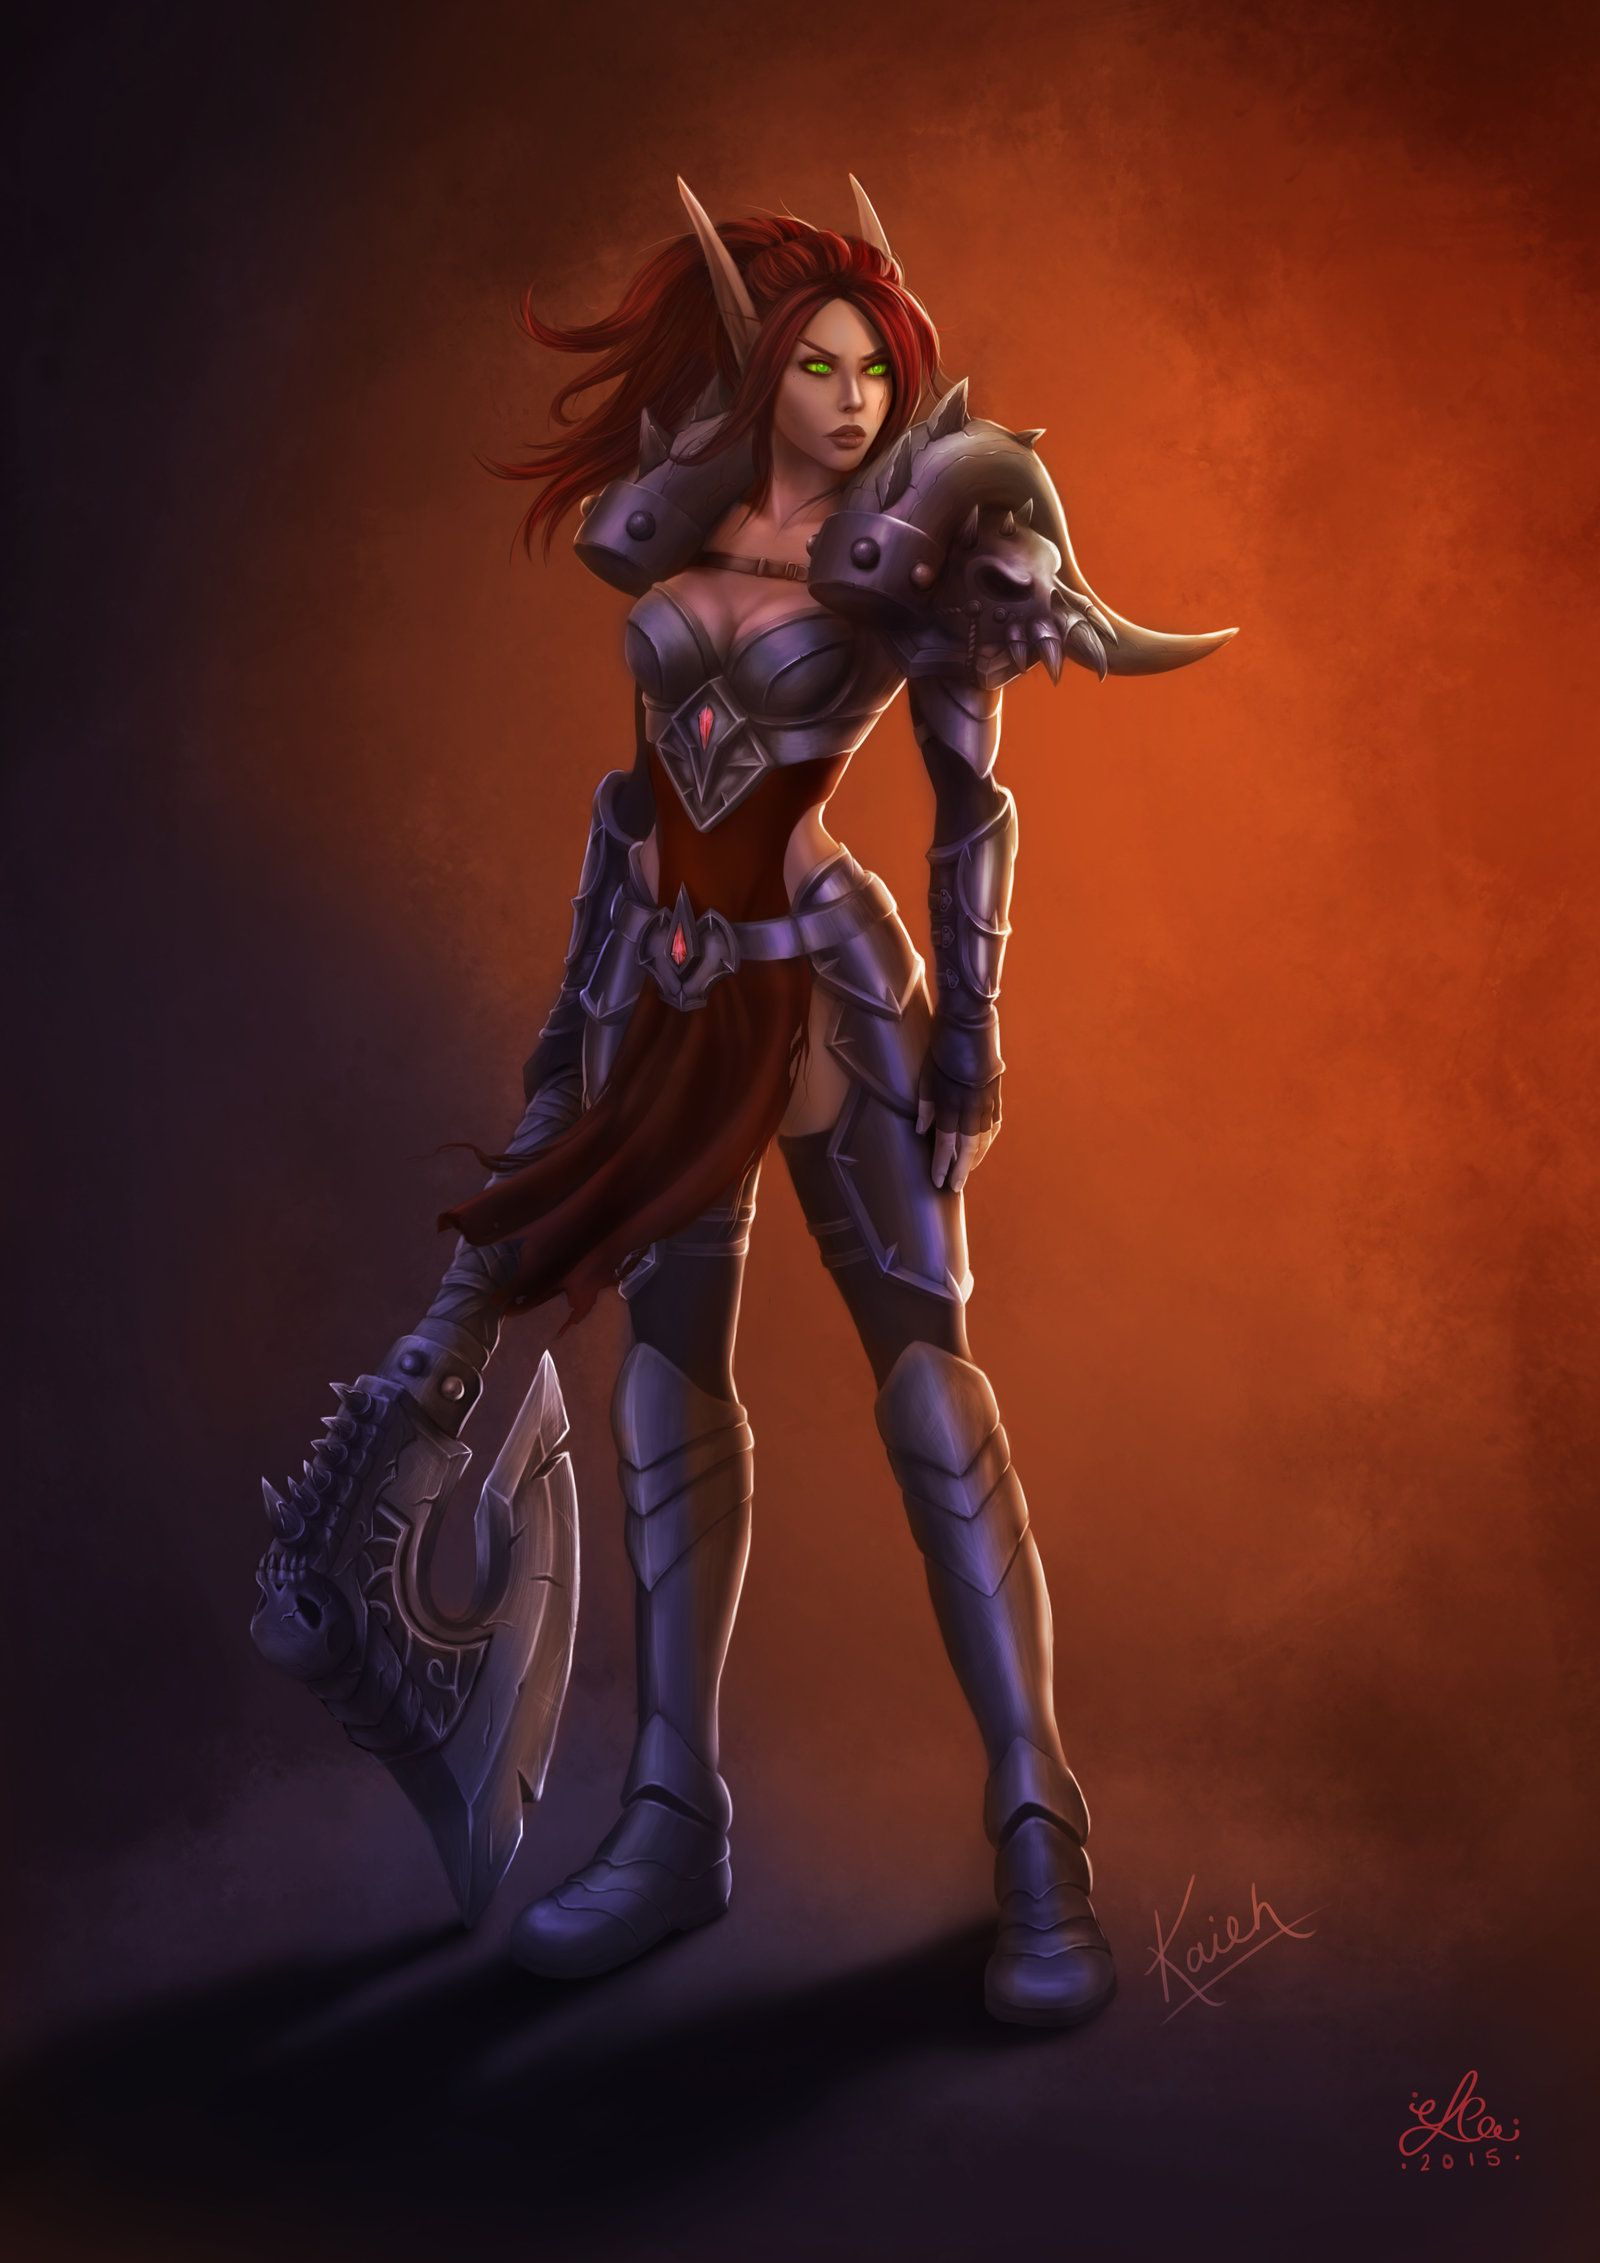 Kaieh By Elcee Deviantart Com On Deviantart World Of Warcraft